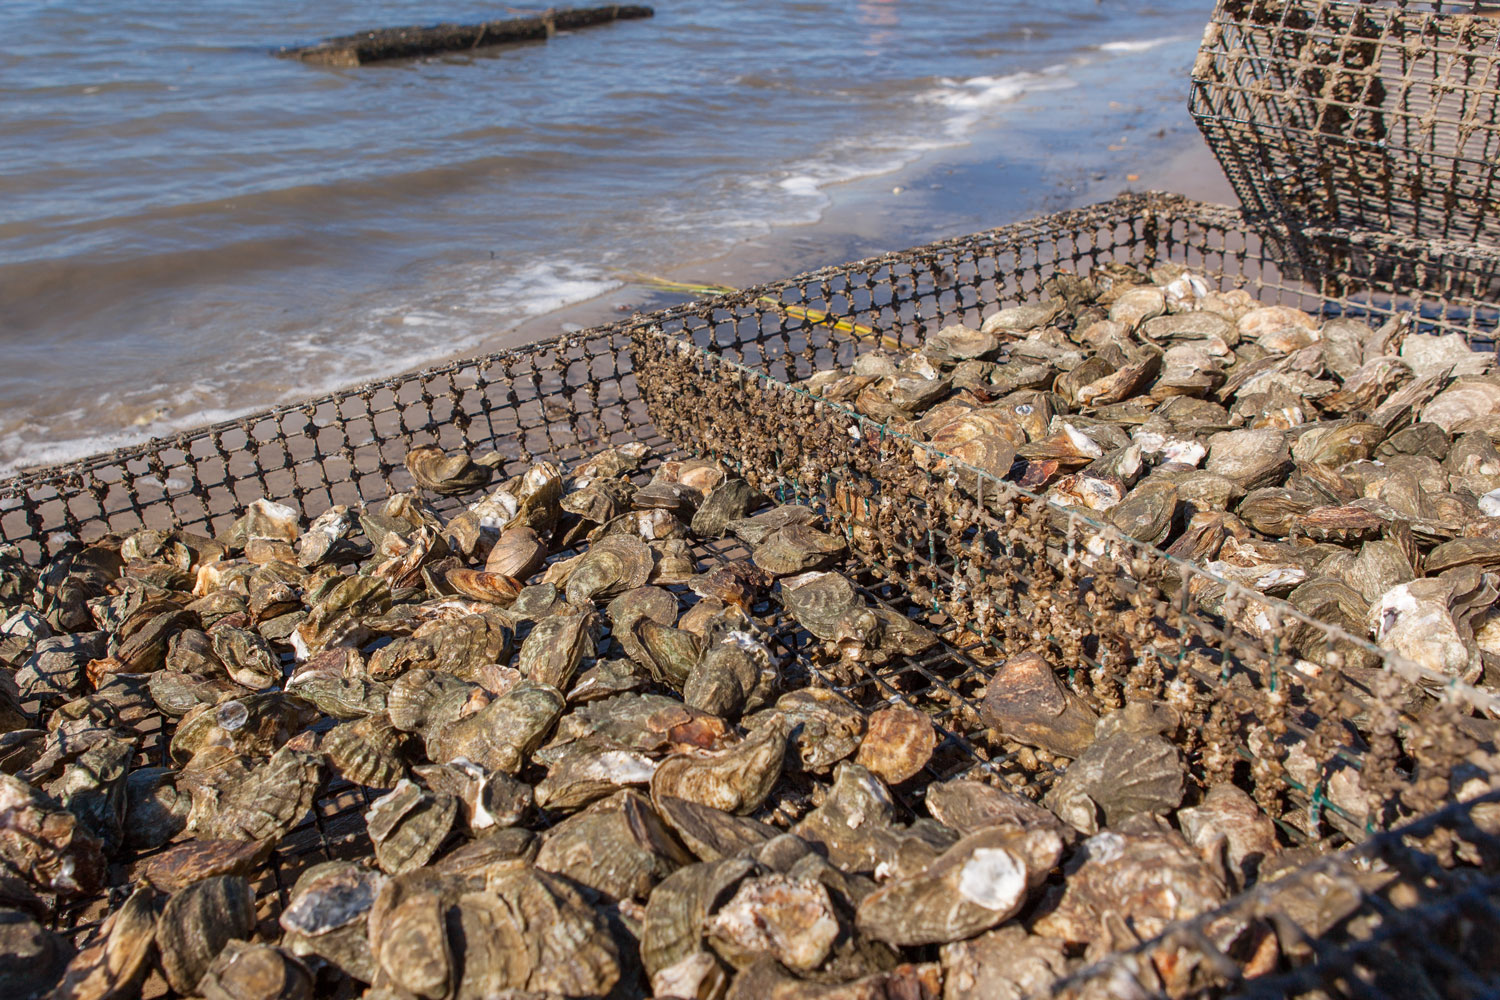 Oyster_Farm_Lowcountry.jpg